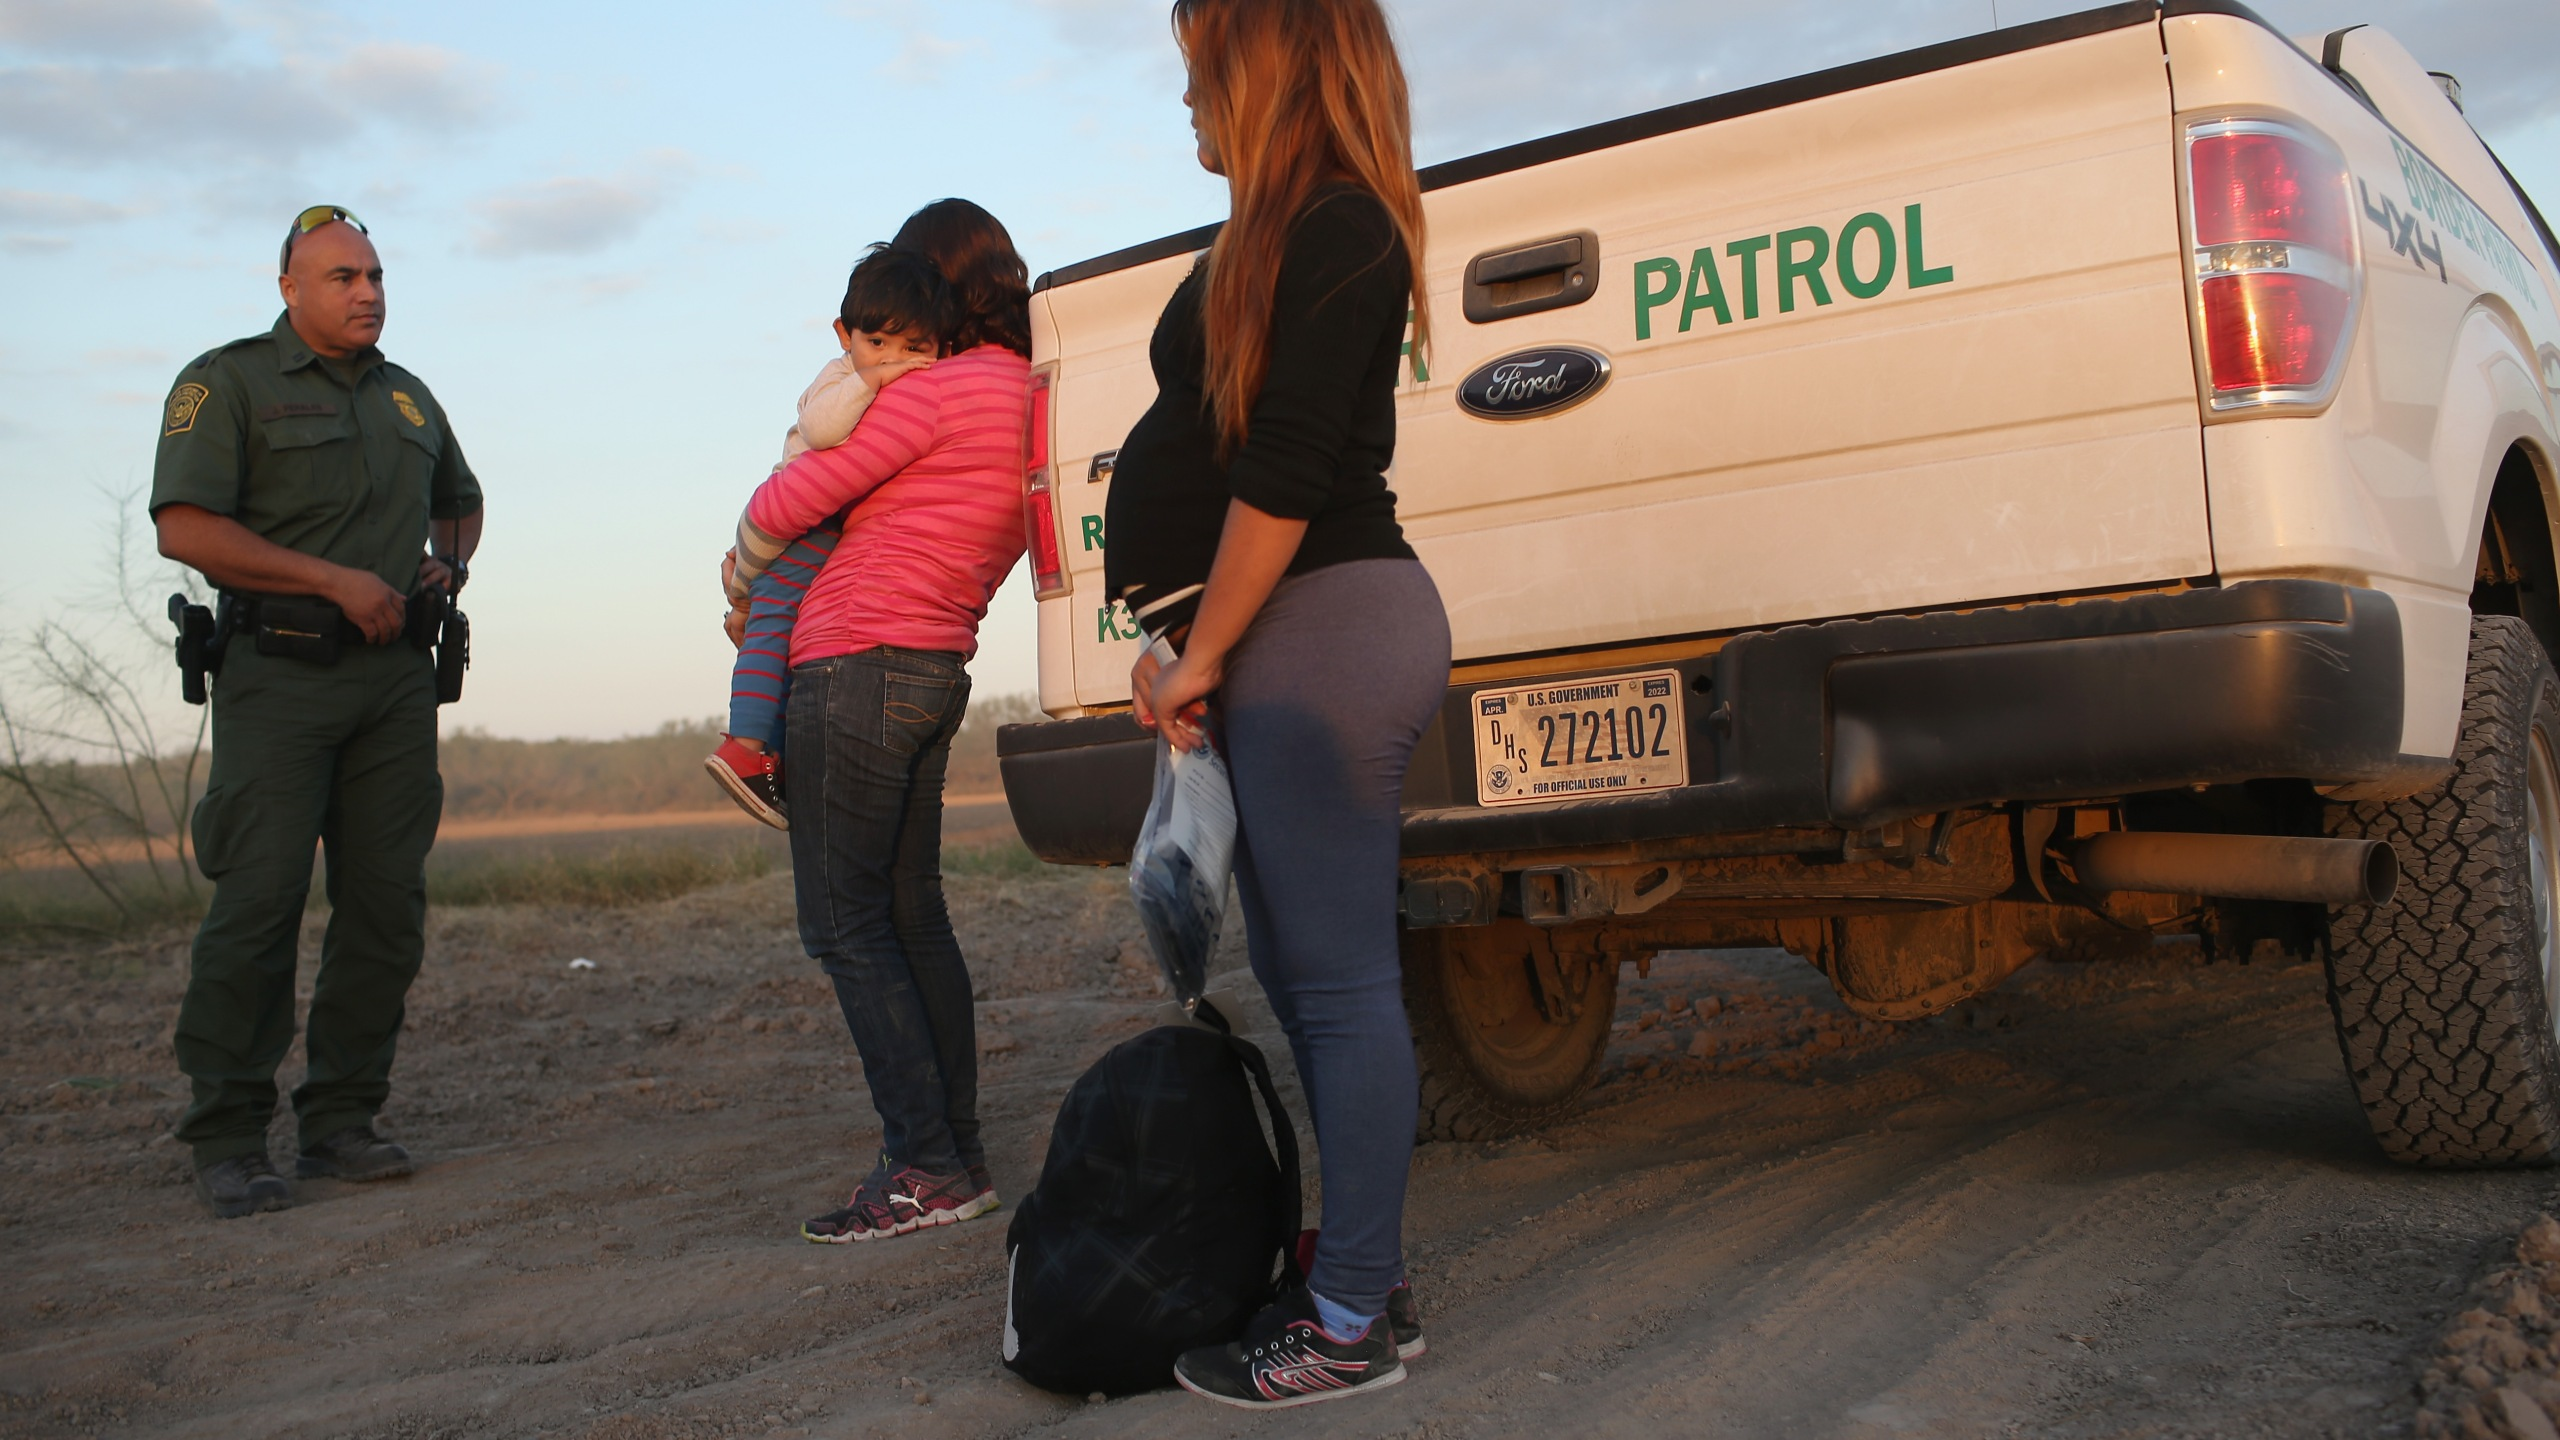 A seven-month pregnant immigrant from El Salvador stands next to a U.S. Border Patrol truck after she and others turned themselves in to border agents on Dec. 7, 2015 near Rio Grande City, Texas.(Credit: John Moore/Getty Images)